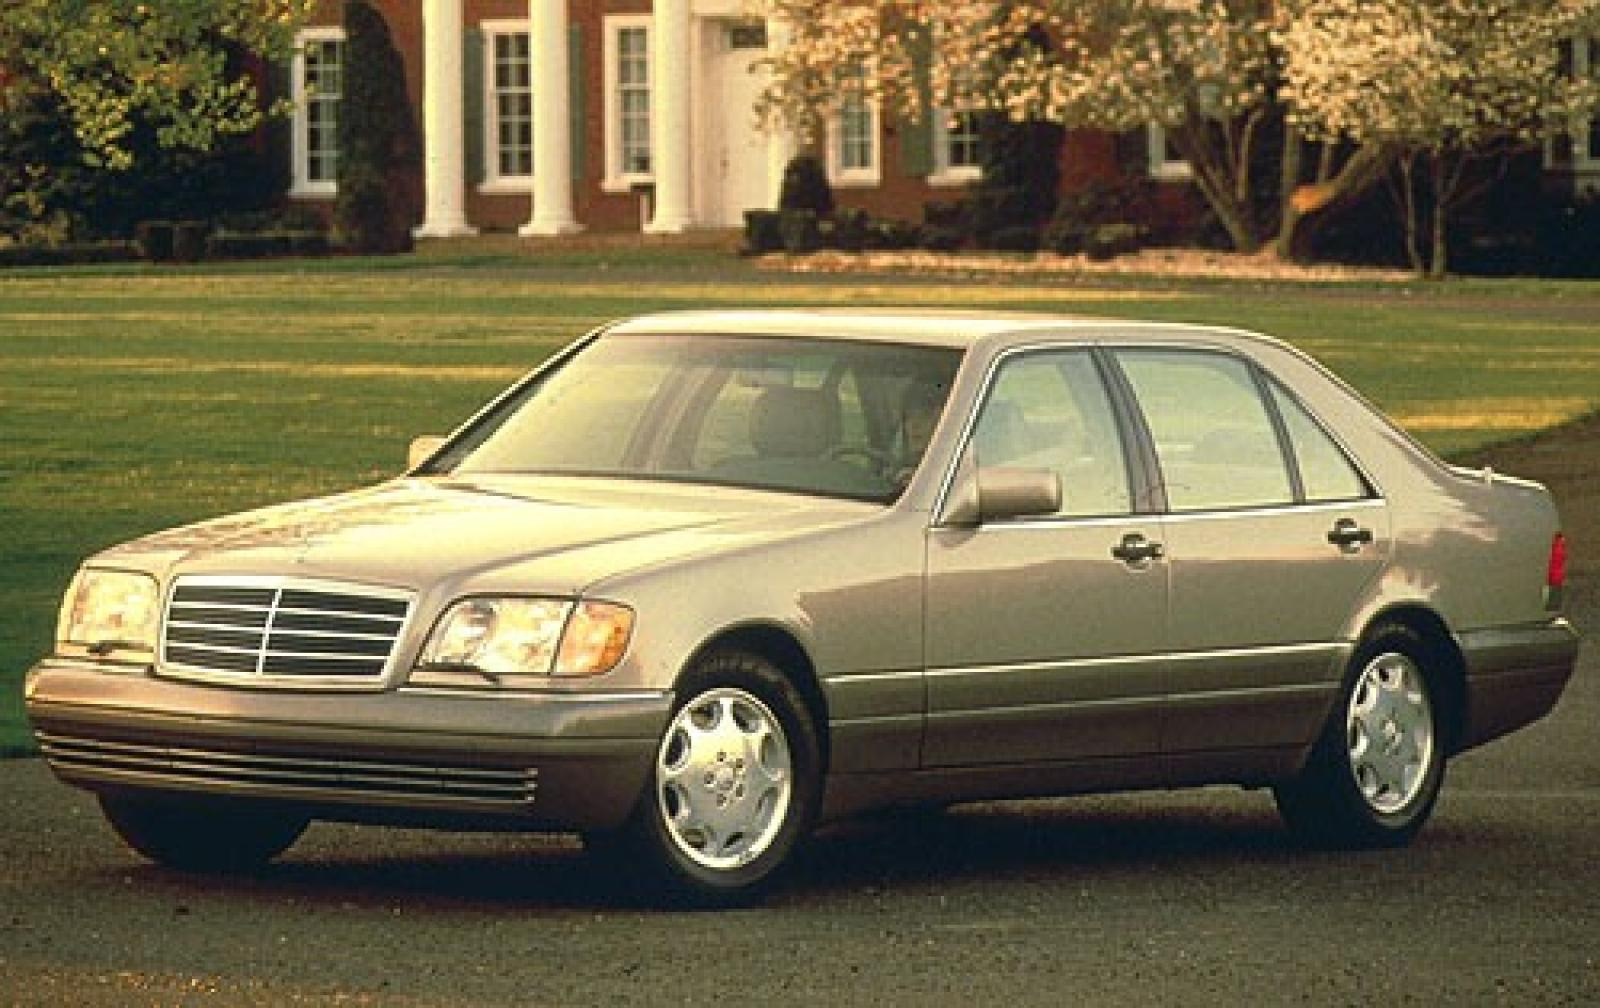 1996 mercedes benz s class information and photos zombiedrive rh zombdrive  com 1994 Mercedes -Benz S500 Coupe Mercedes-Benz S500 Coupe